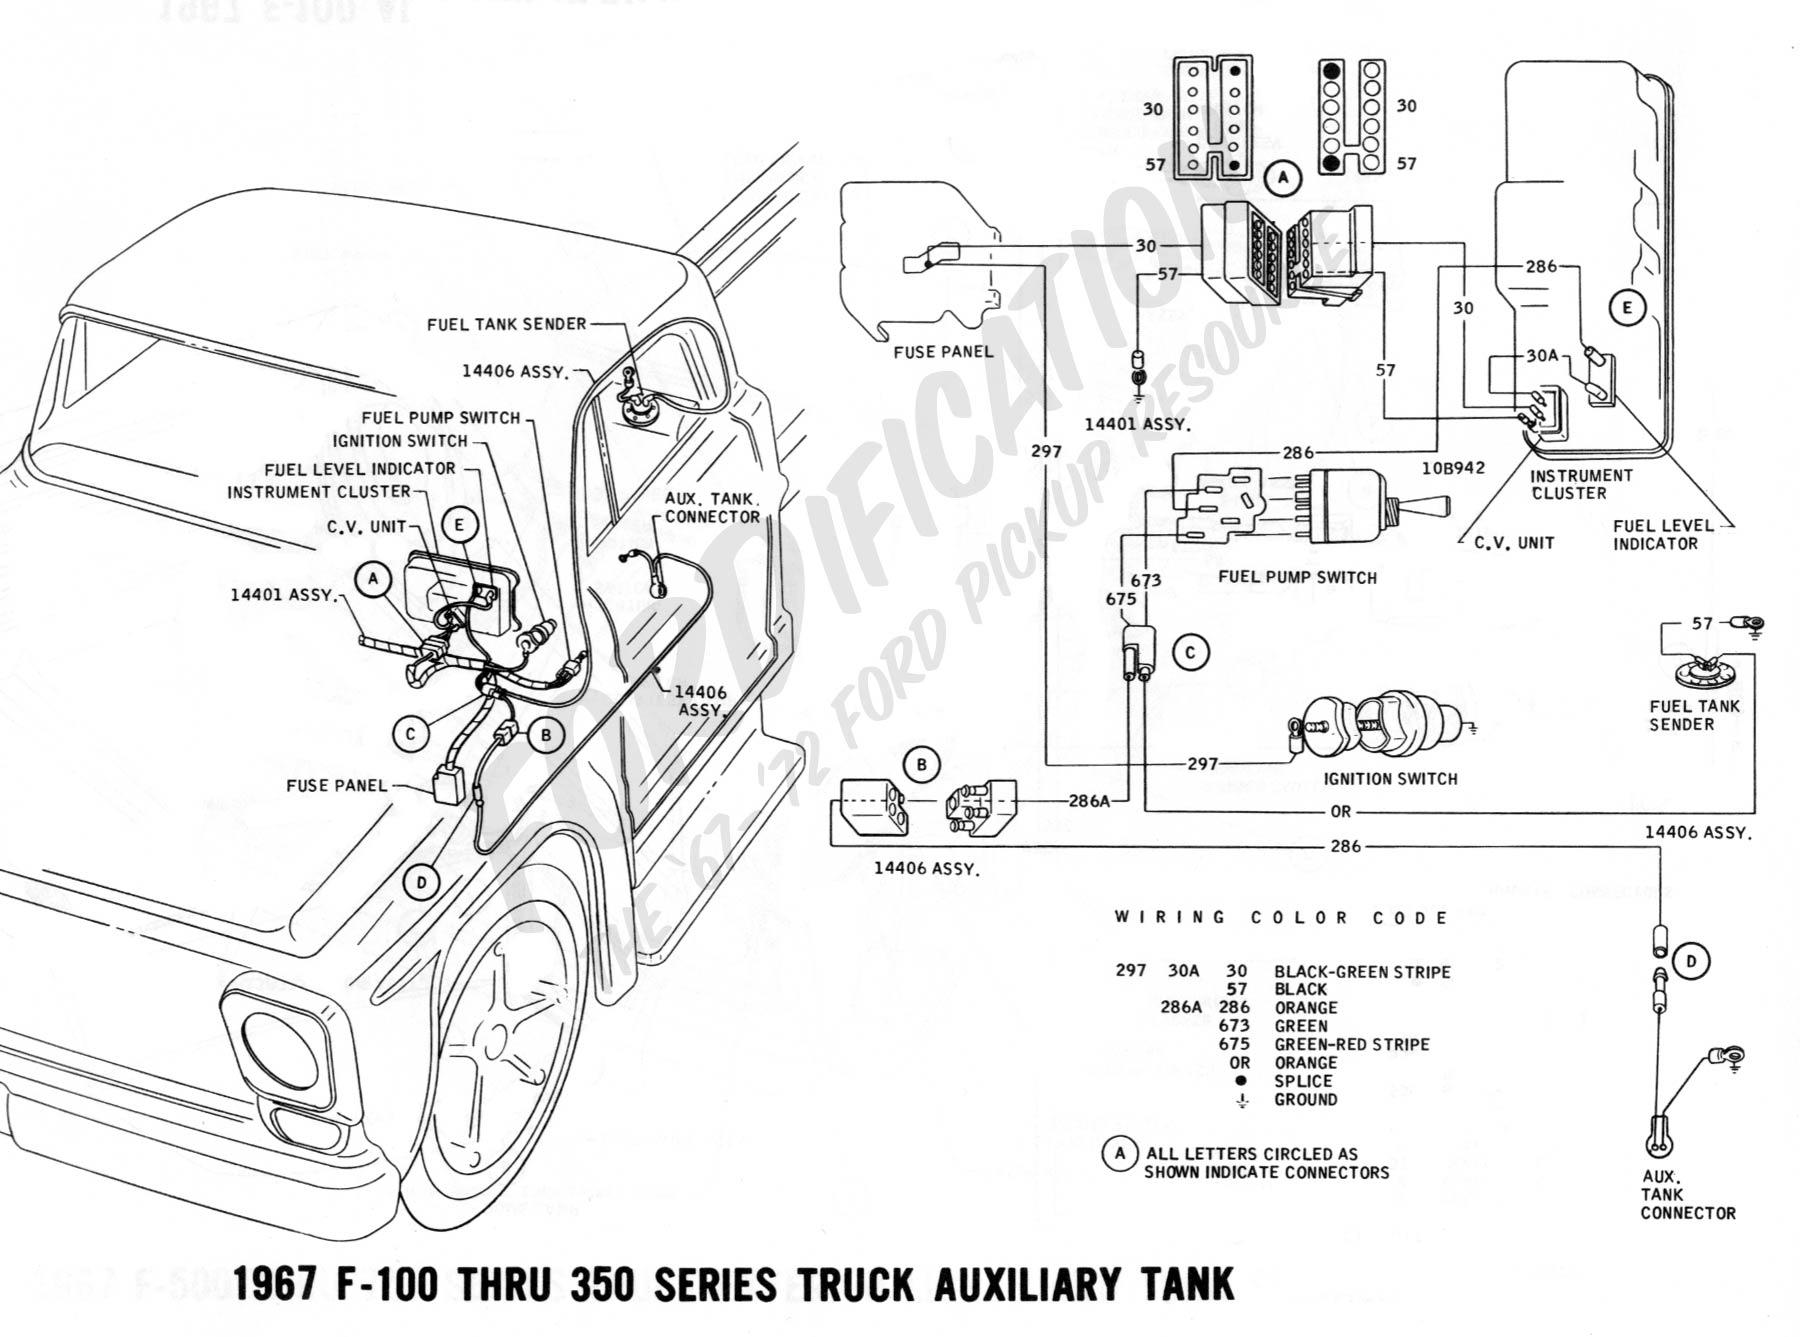 1970 Ford F100 Wiring Diagram likewise 2222159 1972 Coupe Base Engine Fuse Panel Diagram together with Full Size Chevy Headlight And Alternator Conversion Wiring Harness V8 1960 moreover 95 Chevy K1500 Truck Ignition Wiring Diagram besides Ignition Relay Location. on 1965 chevy truck wiring diagram